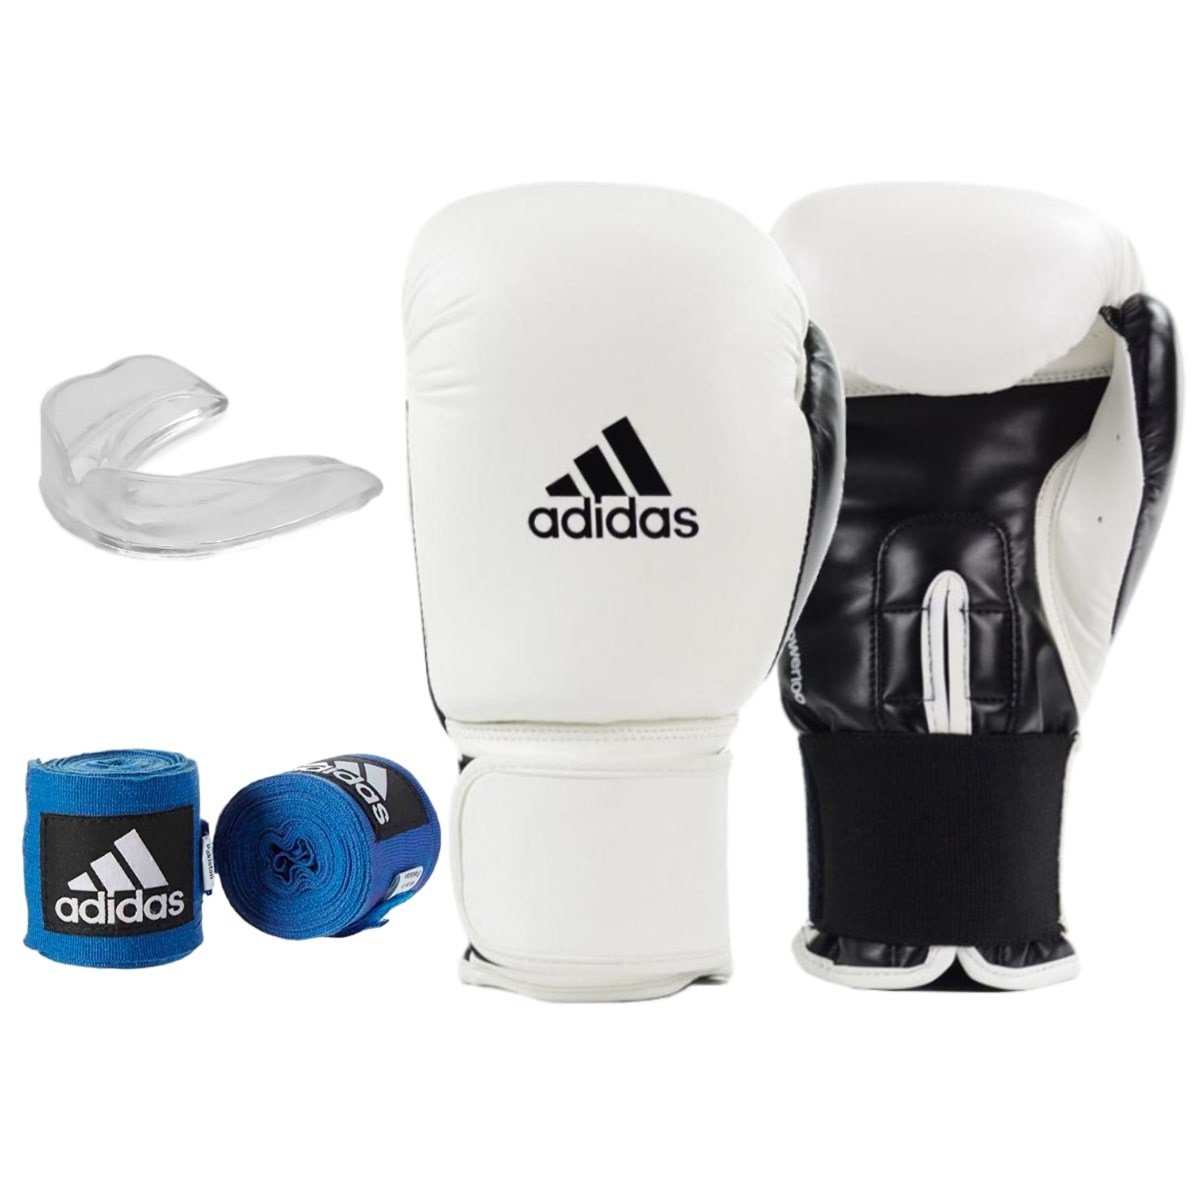 Kit Boxe Adidas Power 100: Luva + Bandagem + Bucal - Branco